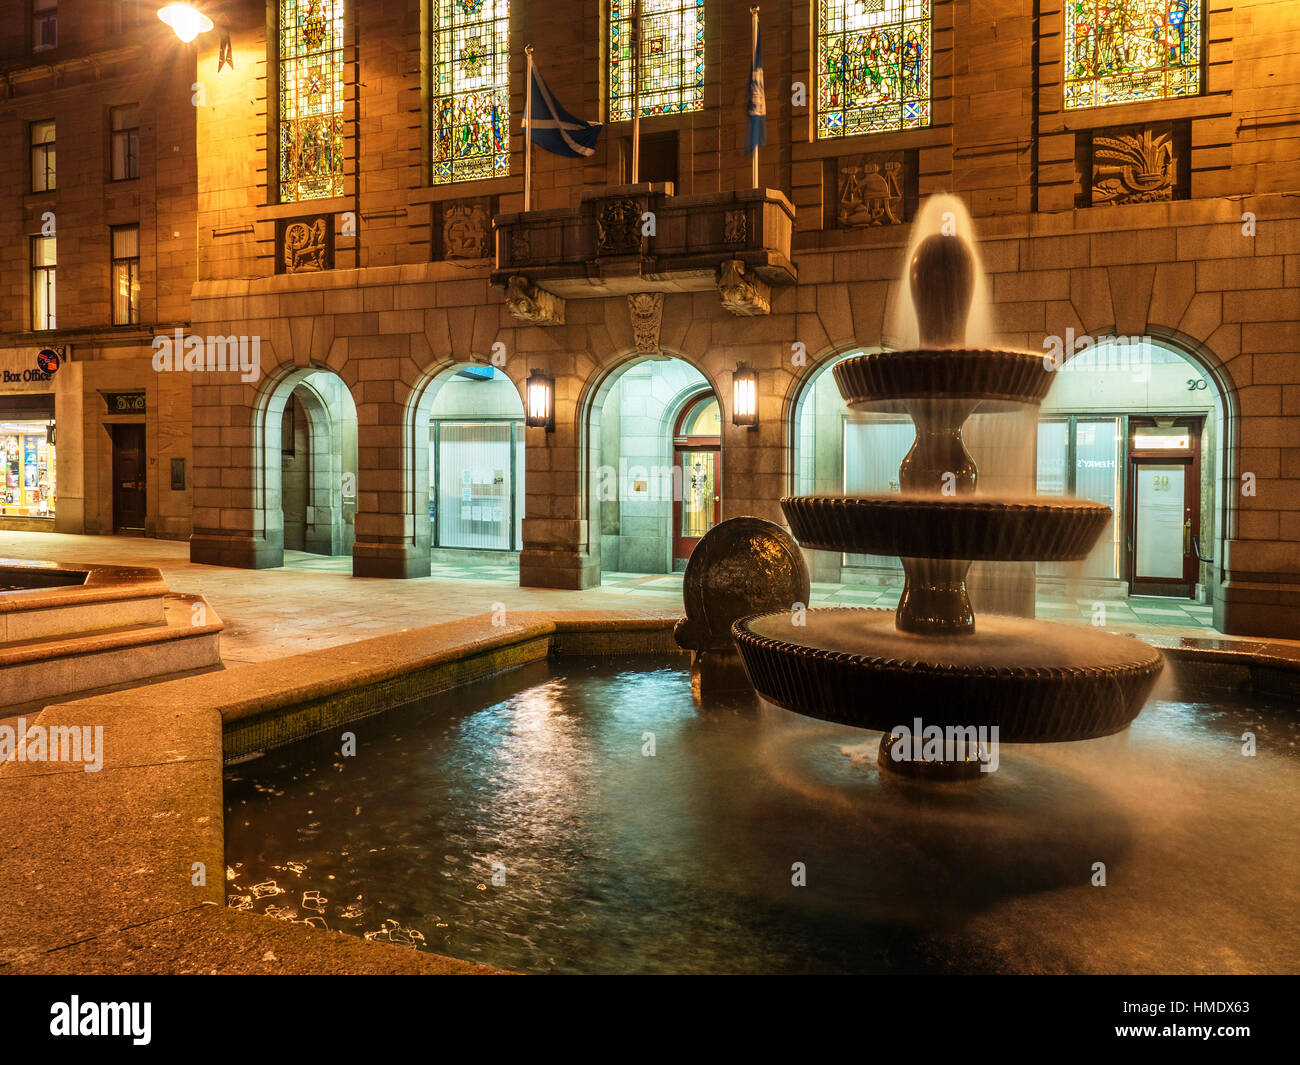 Fountain at City Chambers in City Square at Dusk Dundee Scotland - Stock Image